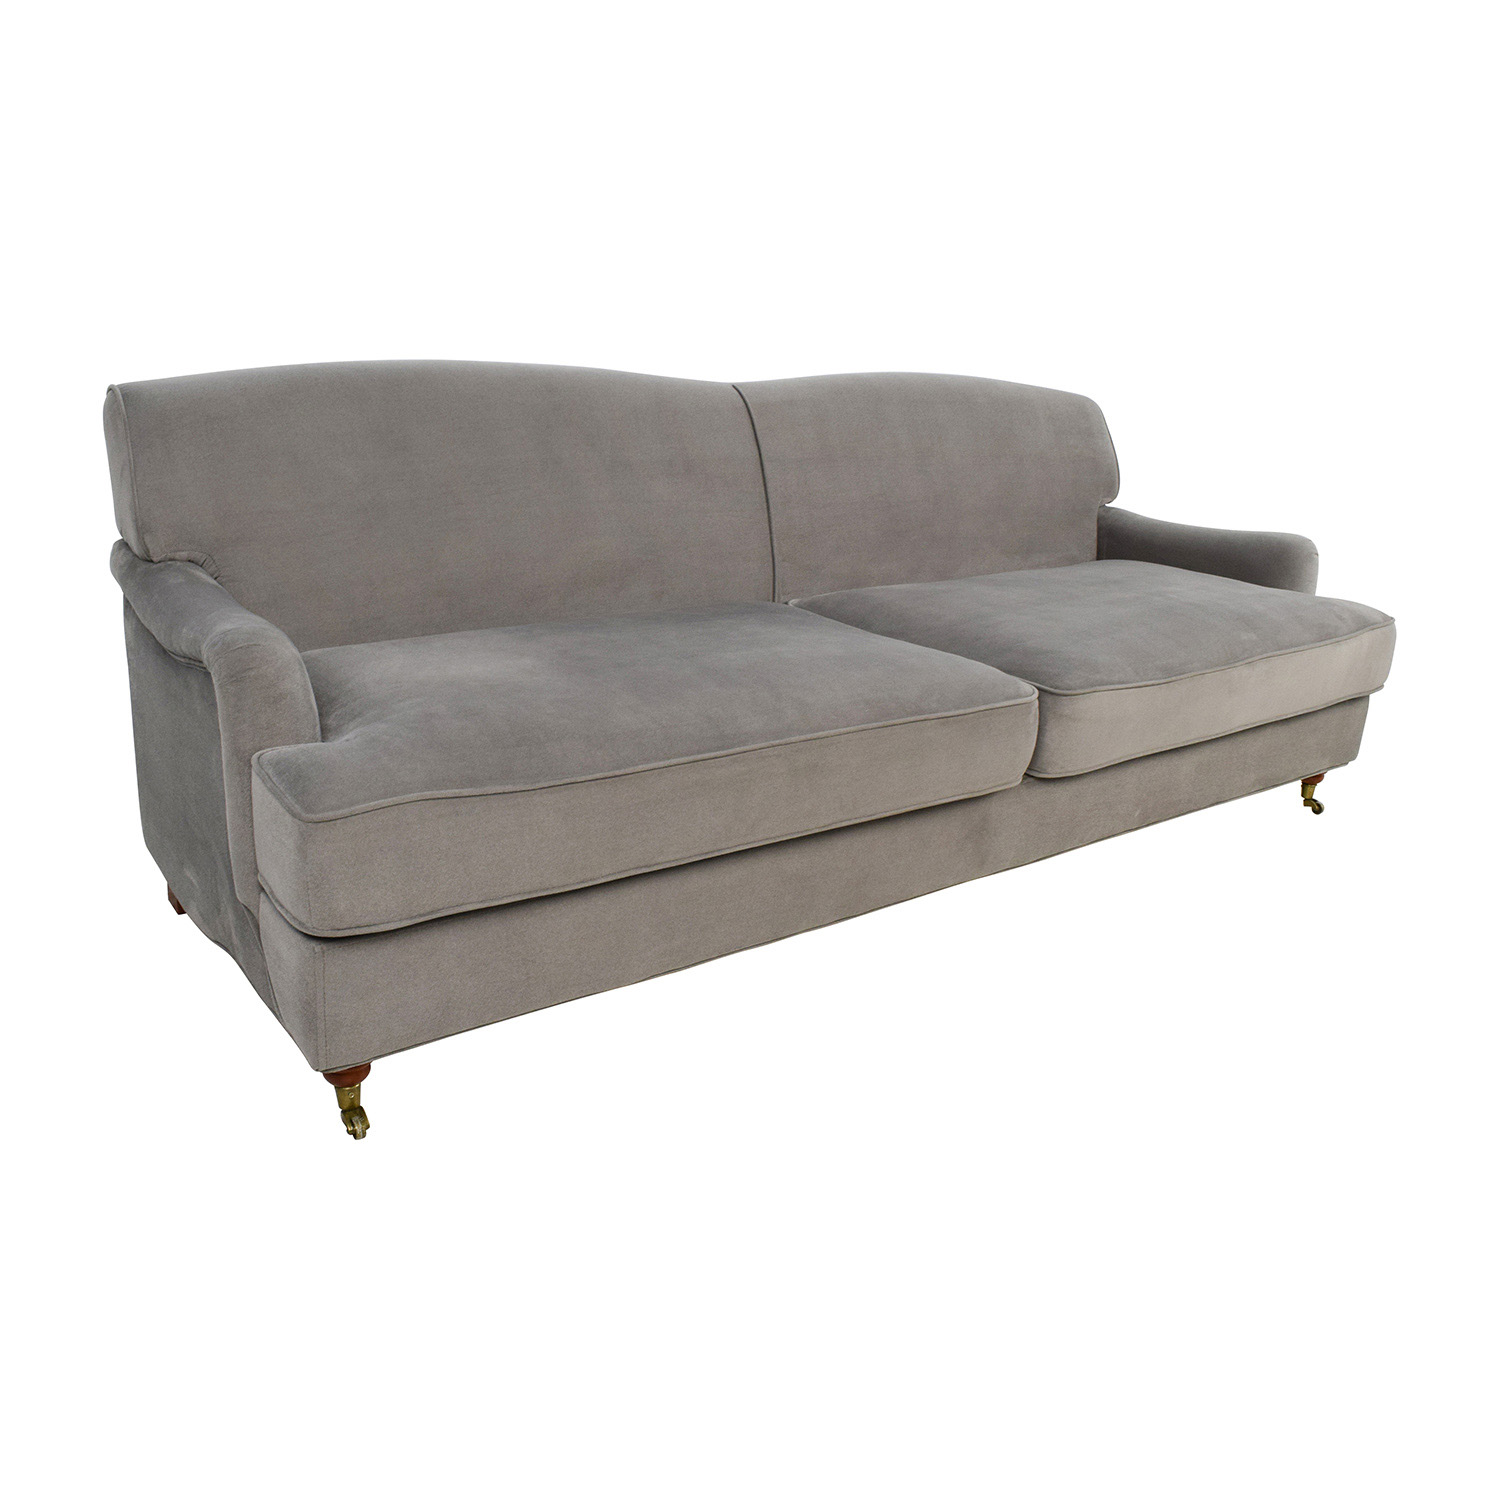 50 off overstock mid century grey microfiber sofa sofas for Microfiber sectional sofa